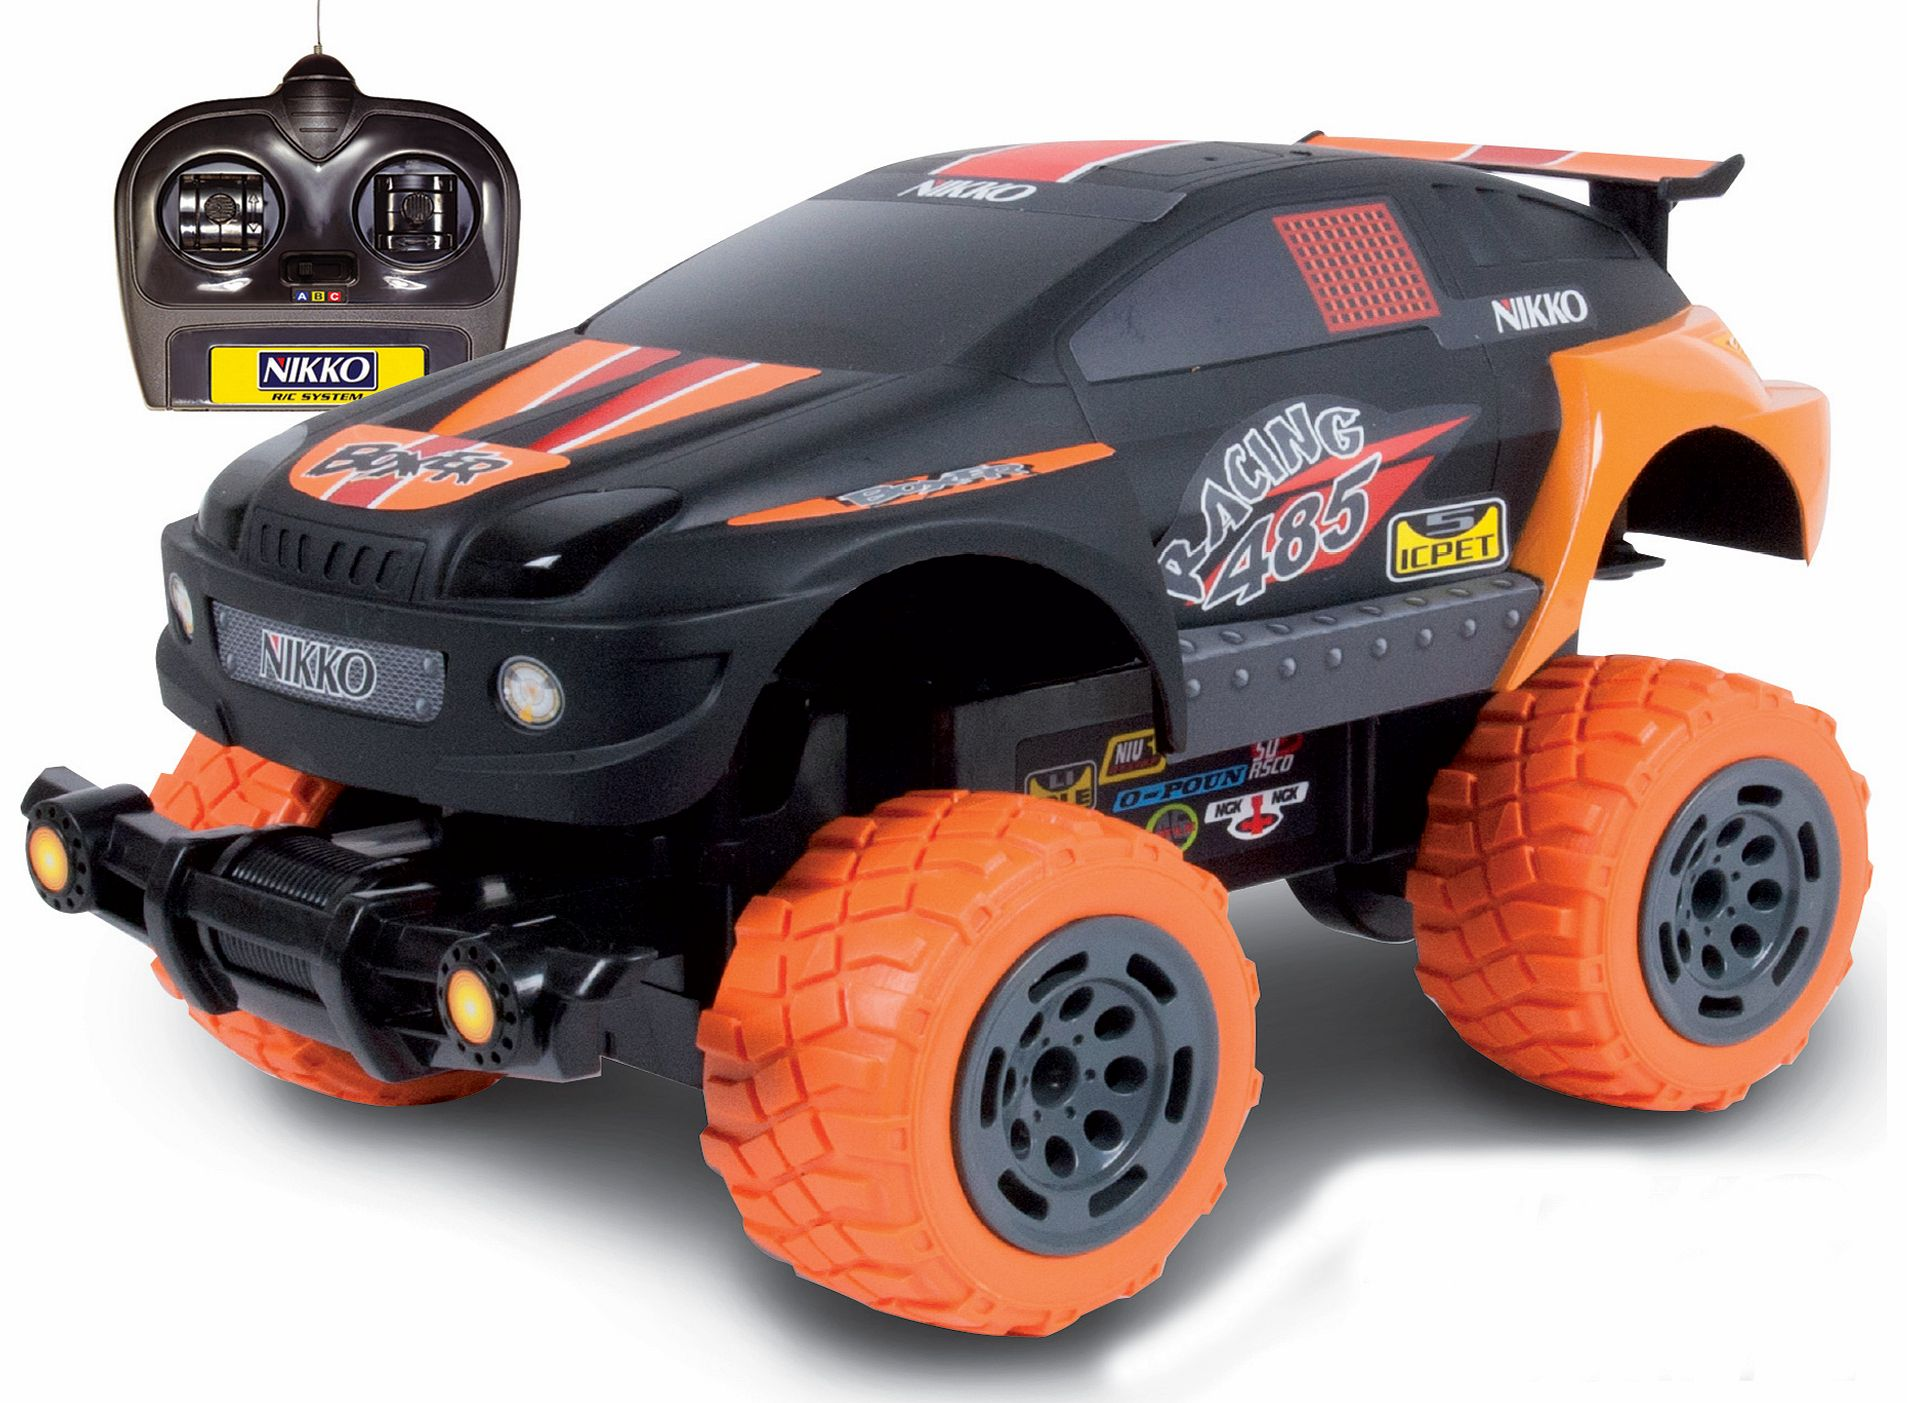 remote control car fast with Nikko Rc Toys Reviews on Fast Lane Sos Station in addition Nio Ep9 Breaks Nurburgring Lap Record 6 11 Seconds in addition Subaru Impreza furthermore Cyclone Rc Speed Boat moreover PLAYMOBIL RC TRAIN SET A183YC.